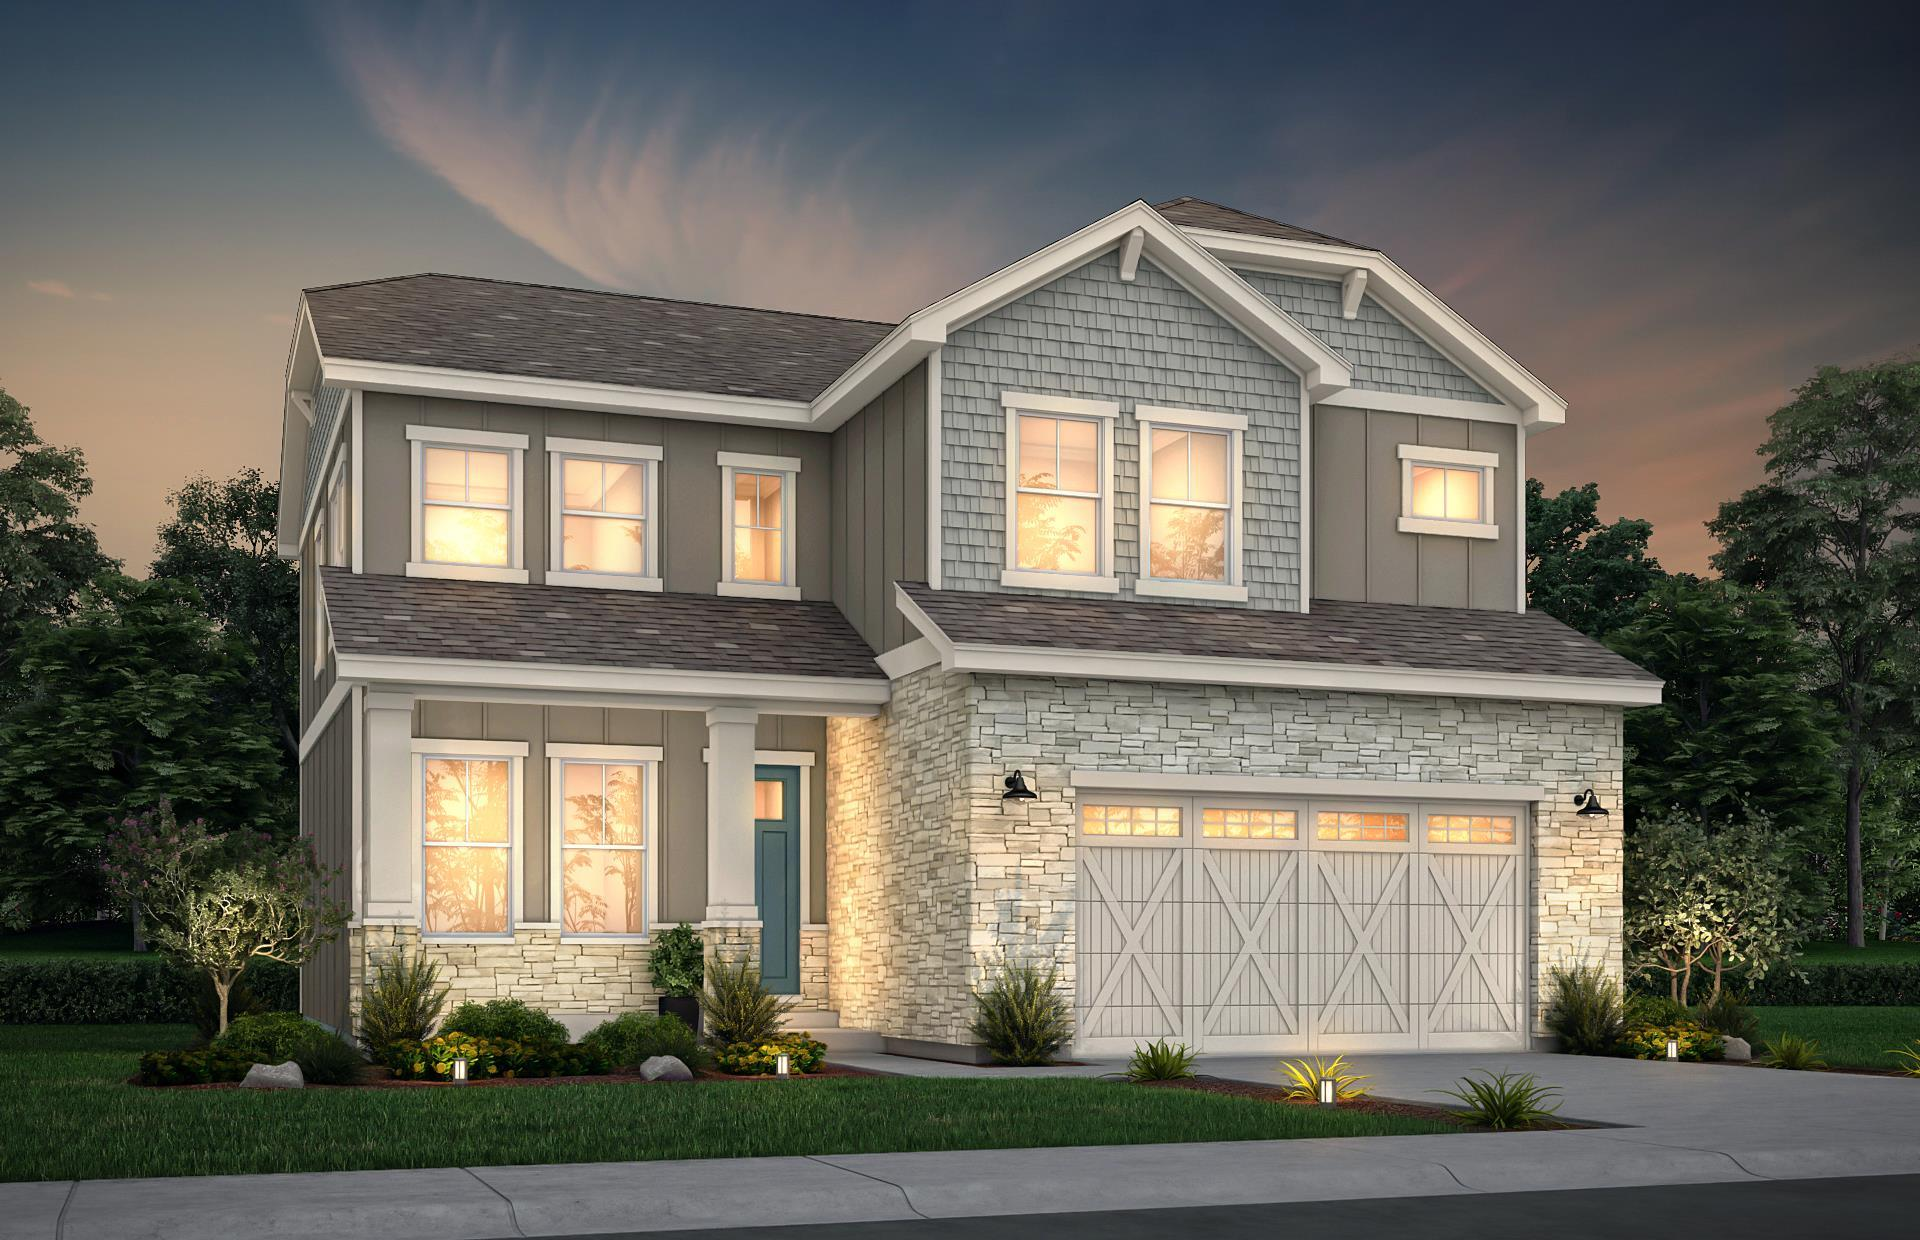 Exterior featured in the Beacon By View Homes Colorado Springs in Colorado Springs, CO